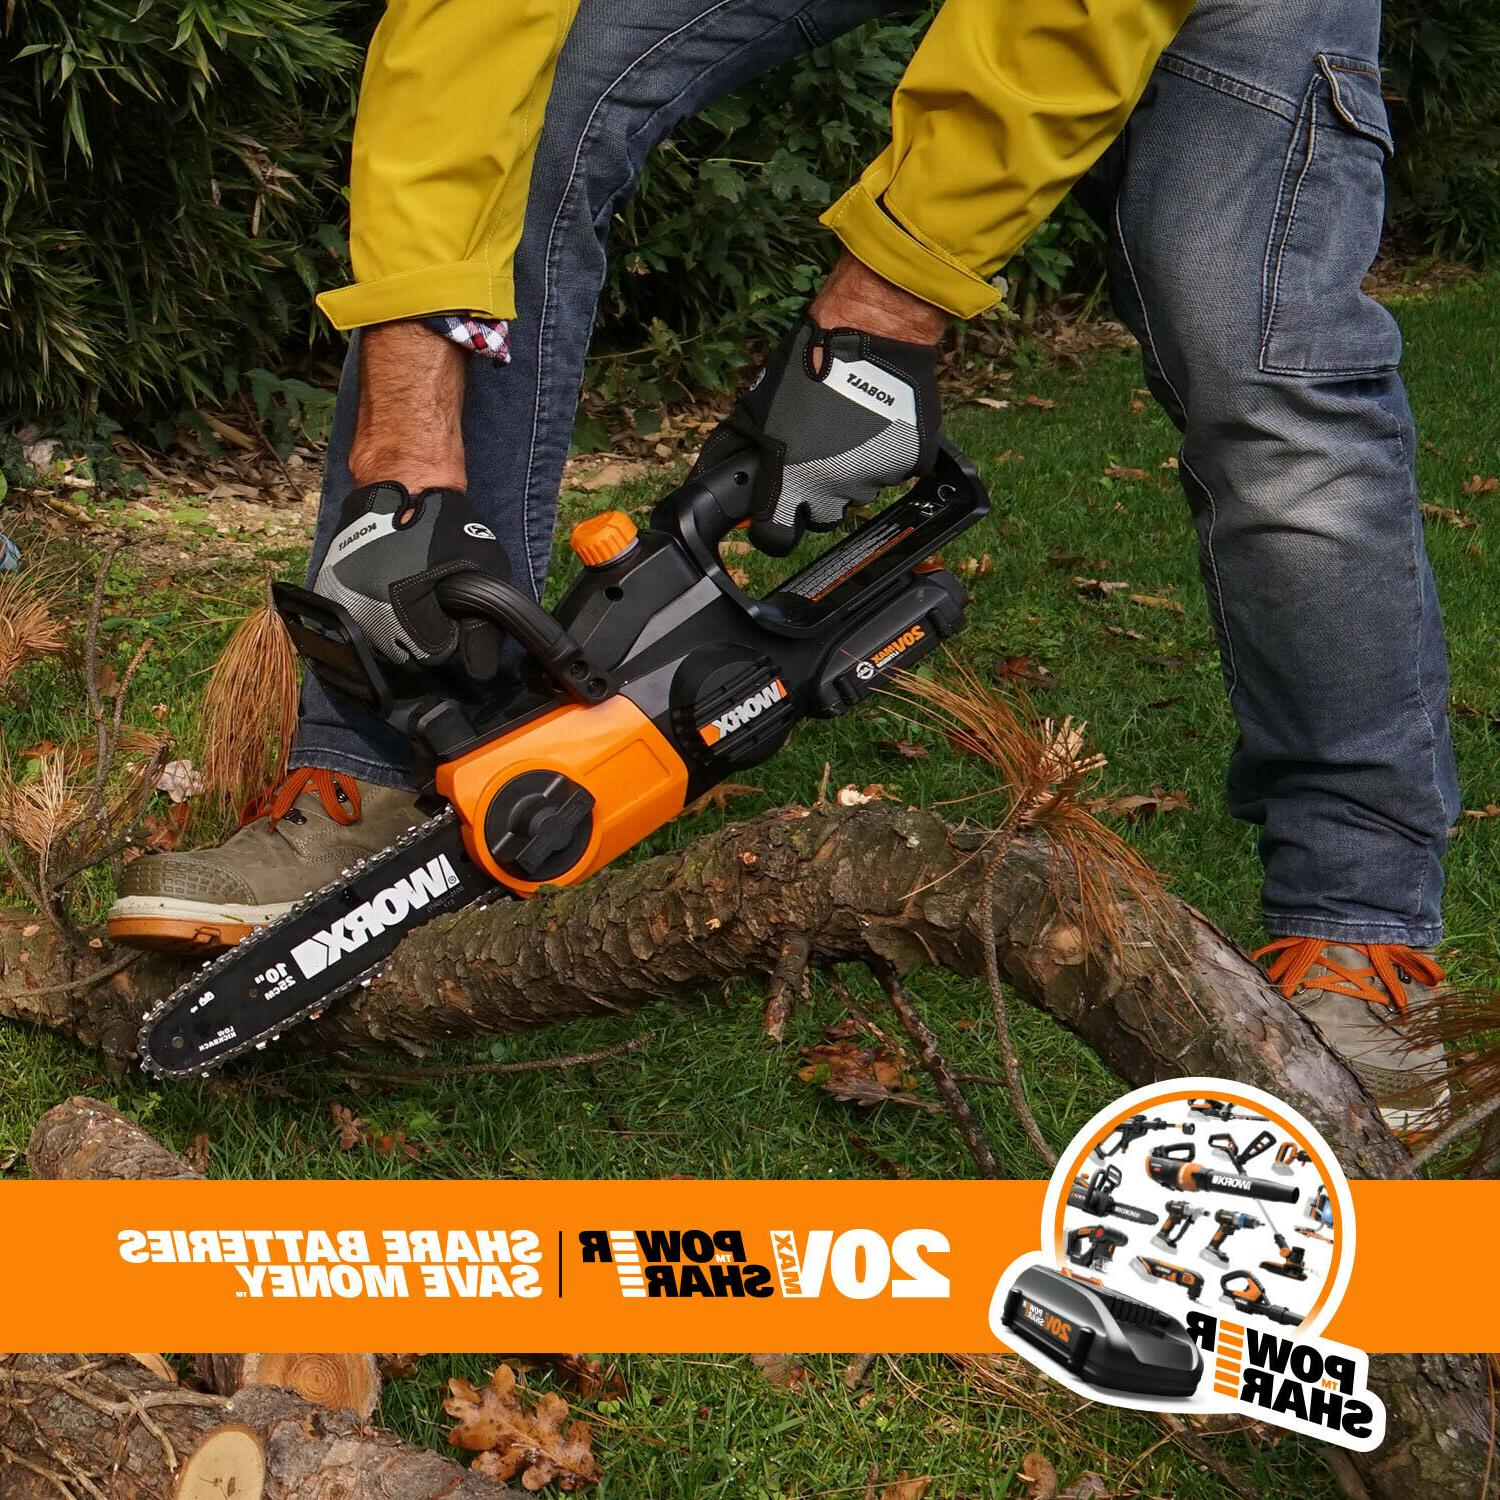 Cordless 20V Chainsaw Auto-Tension and Auto-Oiling Battery and